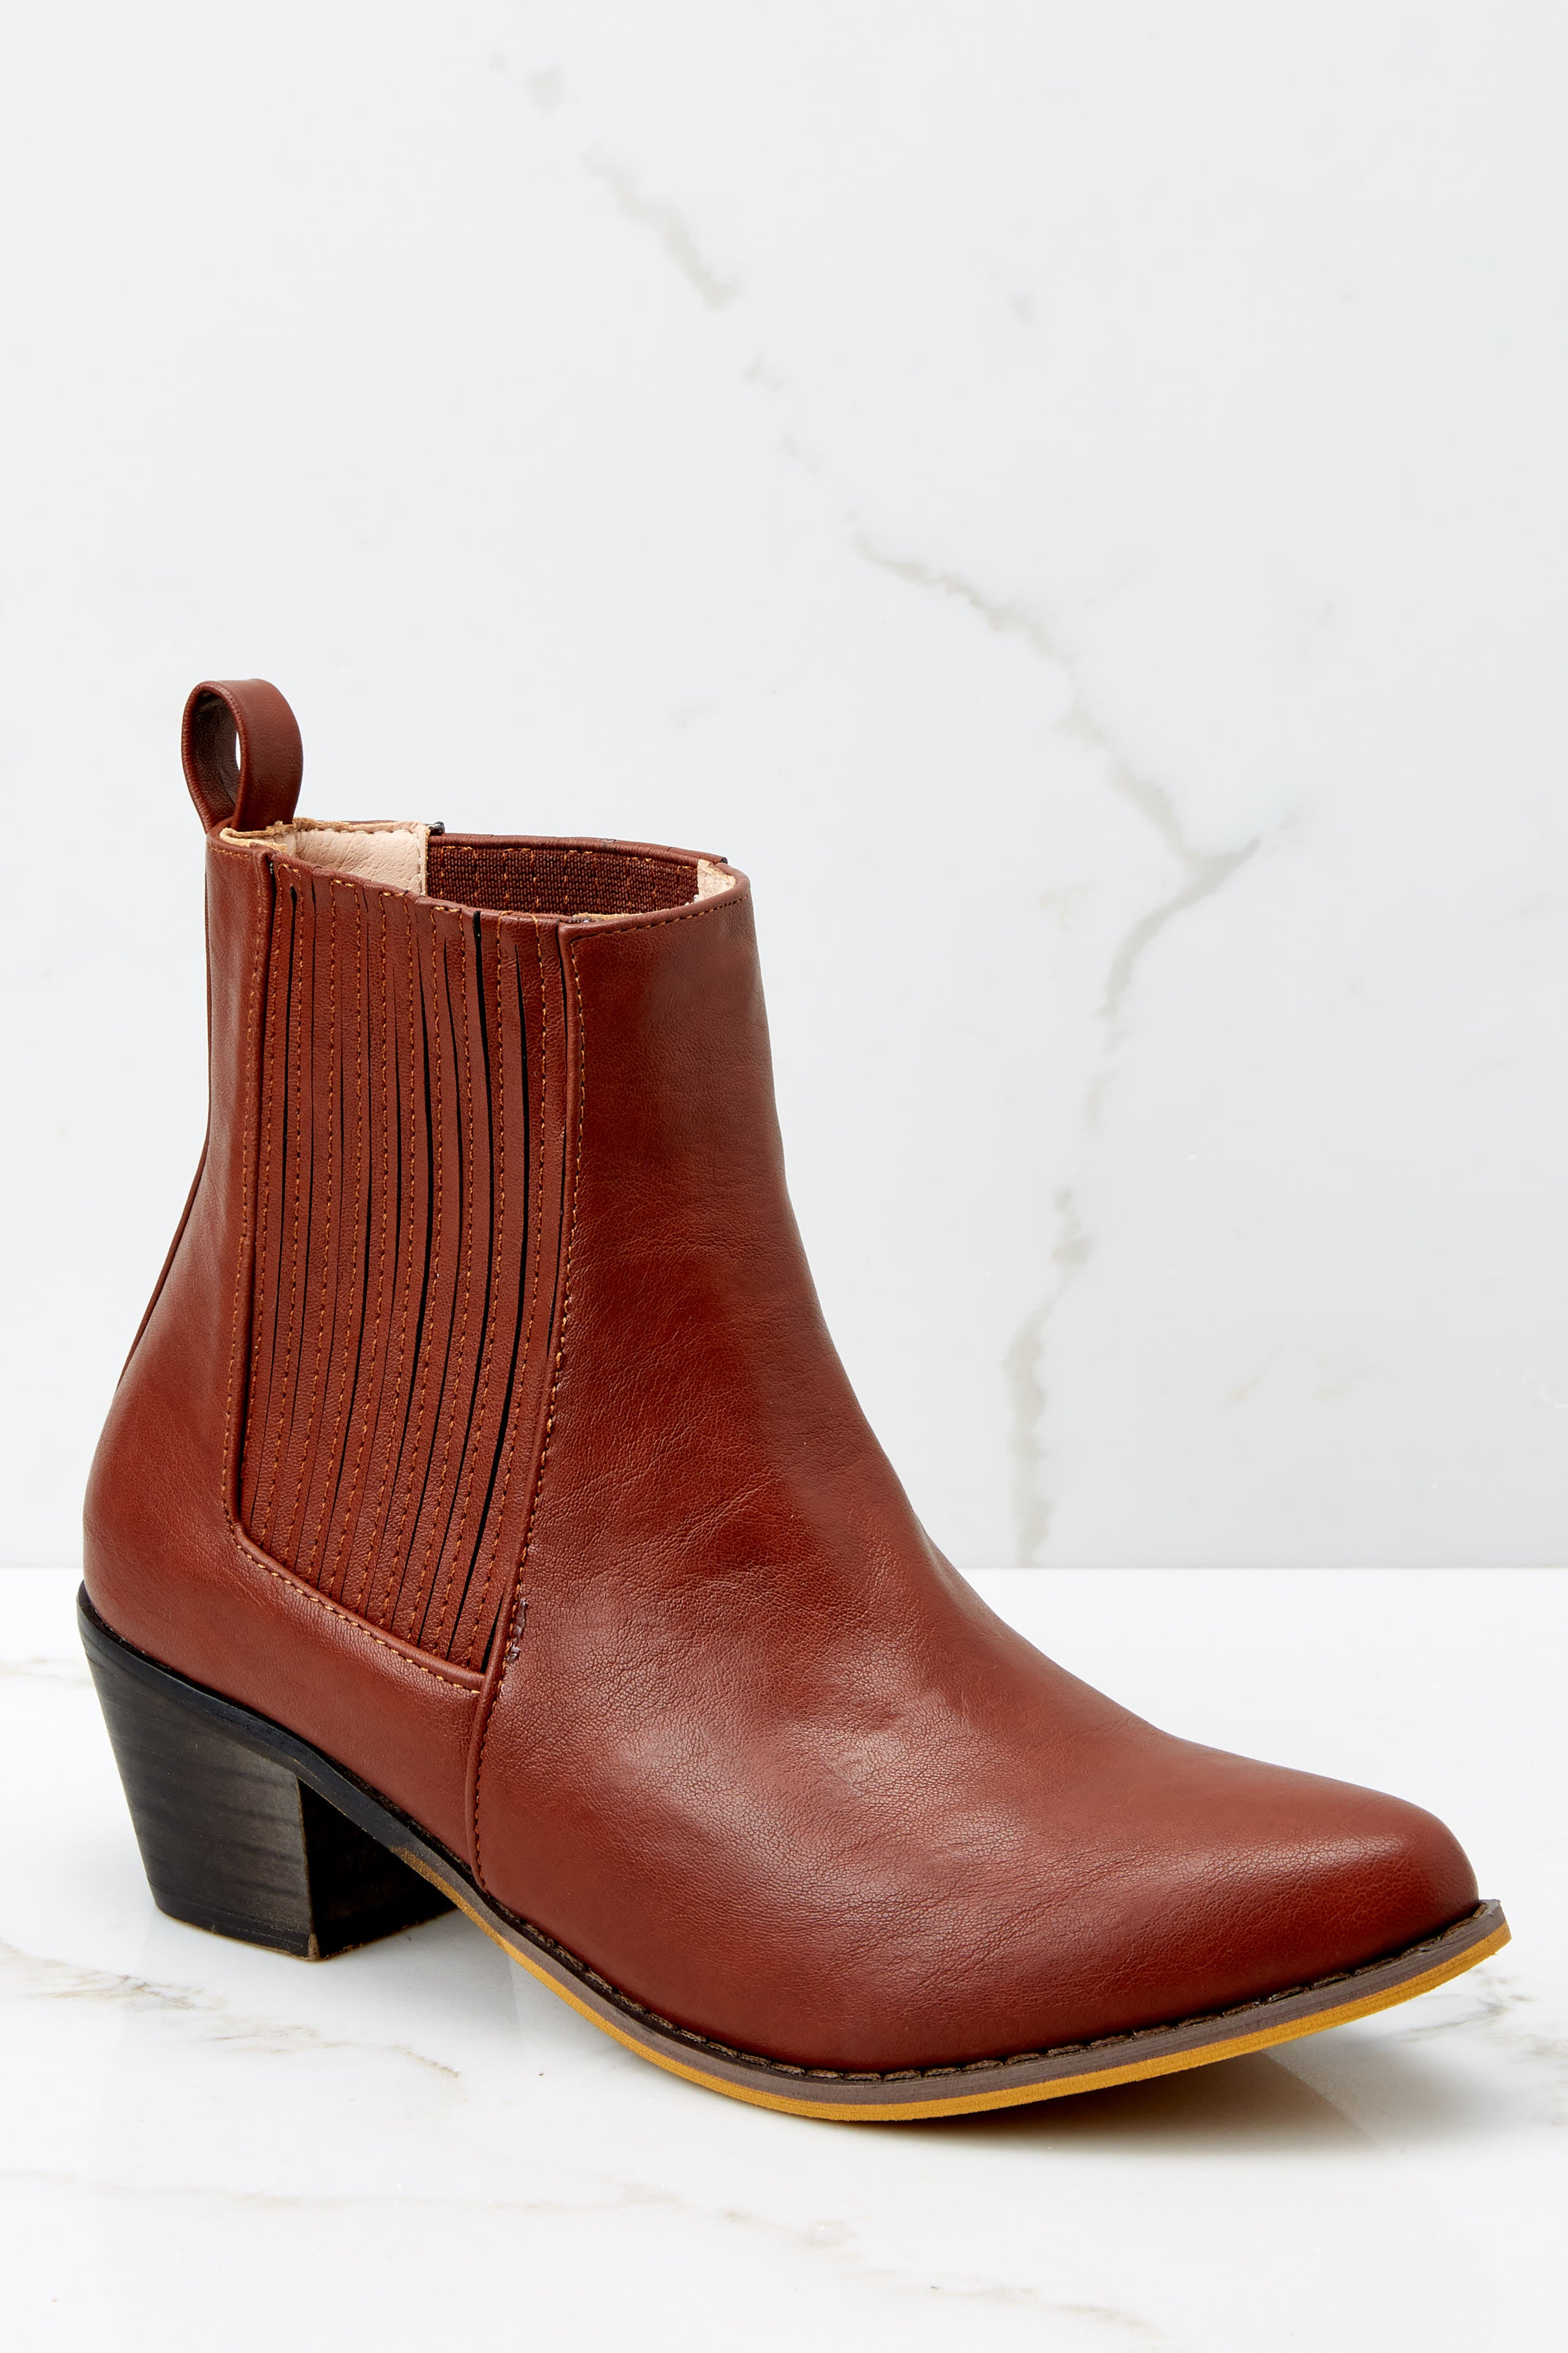 2 Kicking Around Cognac Ankle Boots at reddressboutique.com